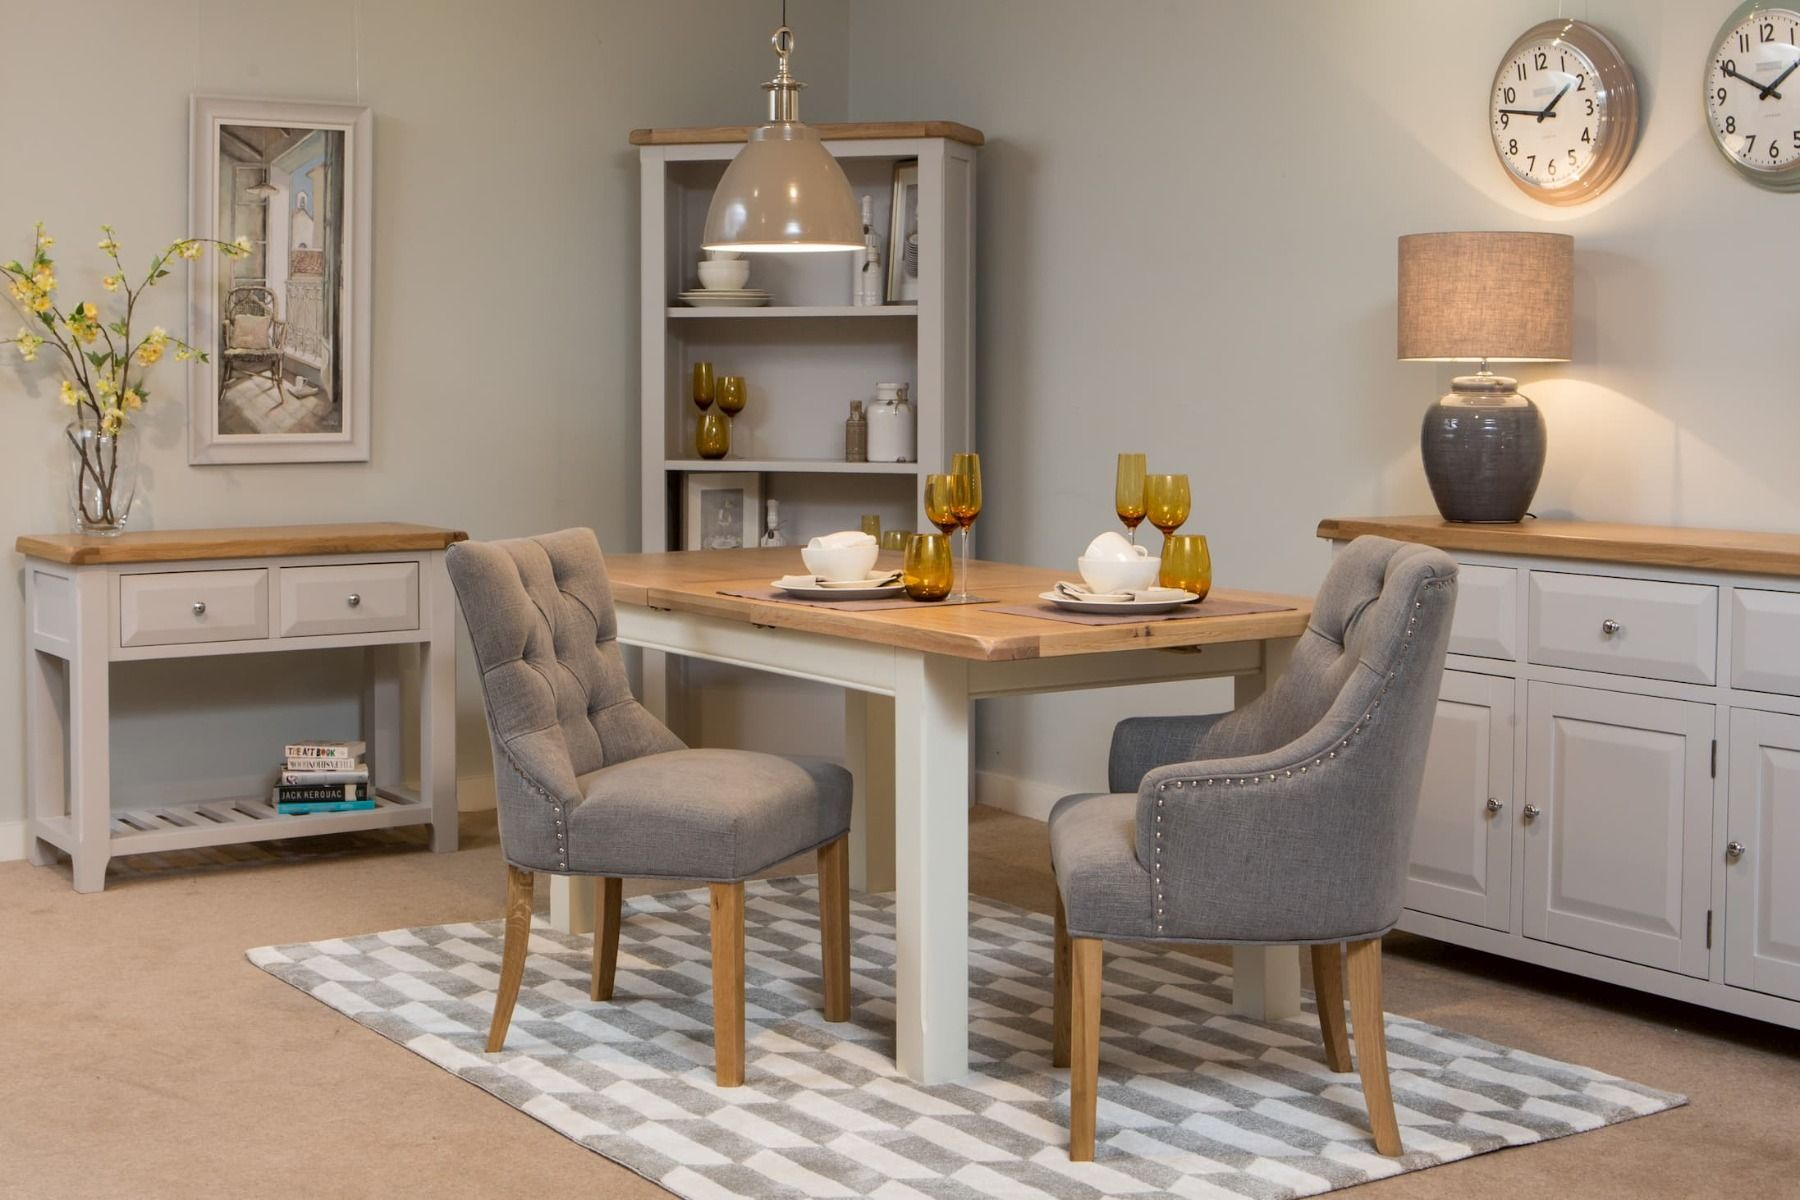 A picture of plush dining chair from EZ Living Furniture